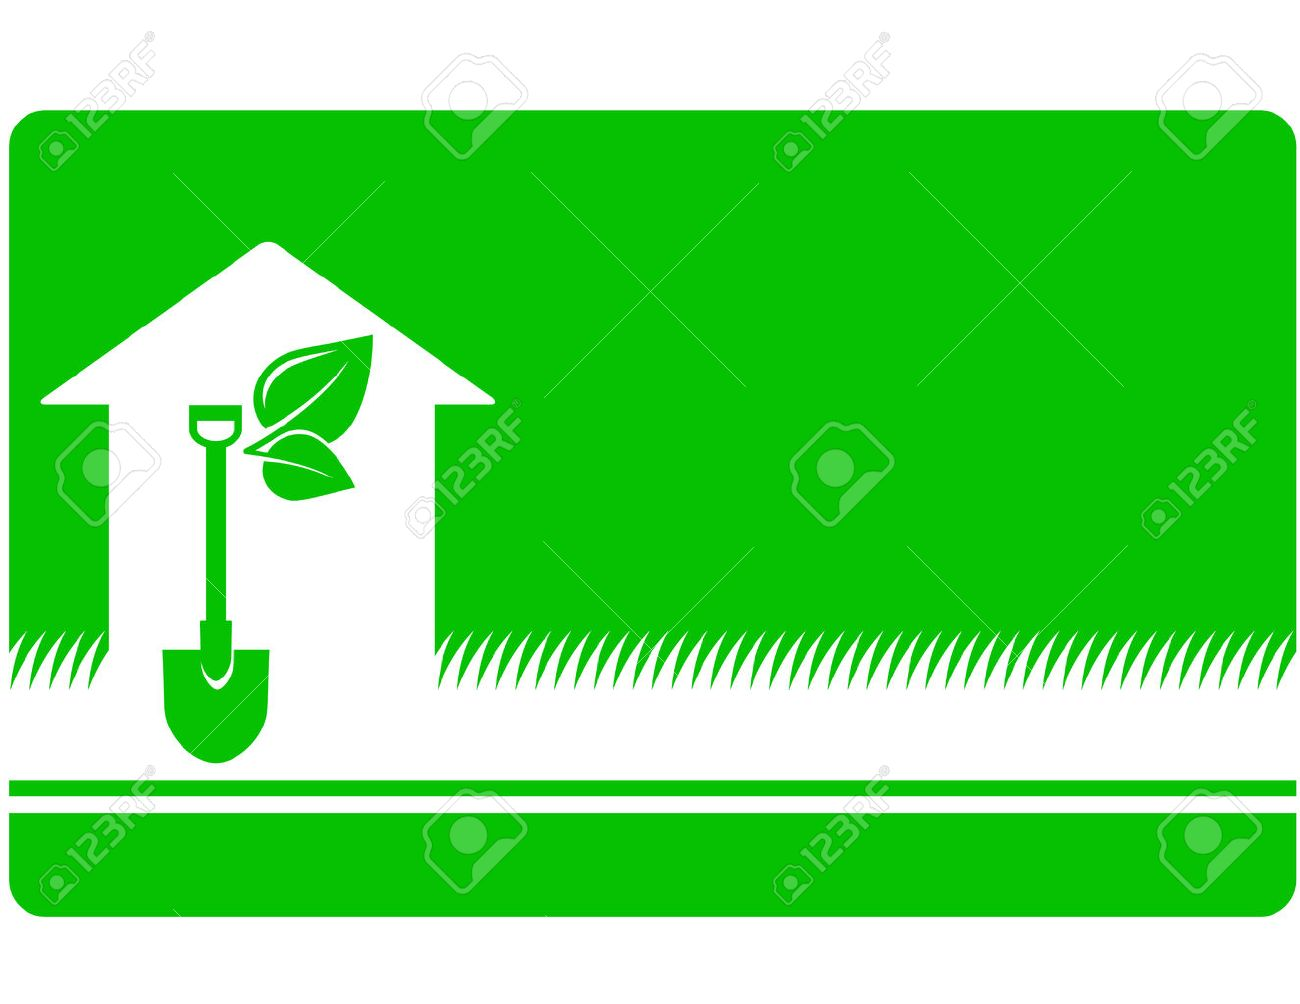 Green Landscaping Business Card With Shovel, Leaf And House Icon ...